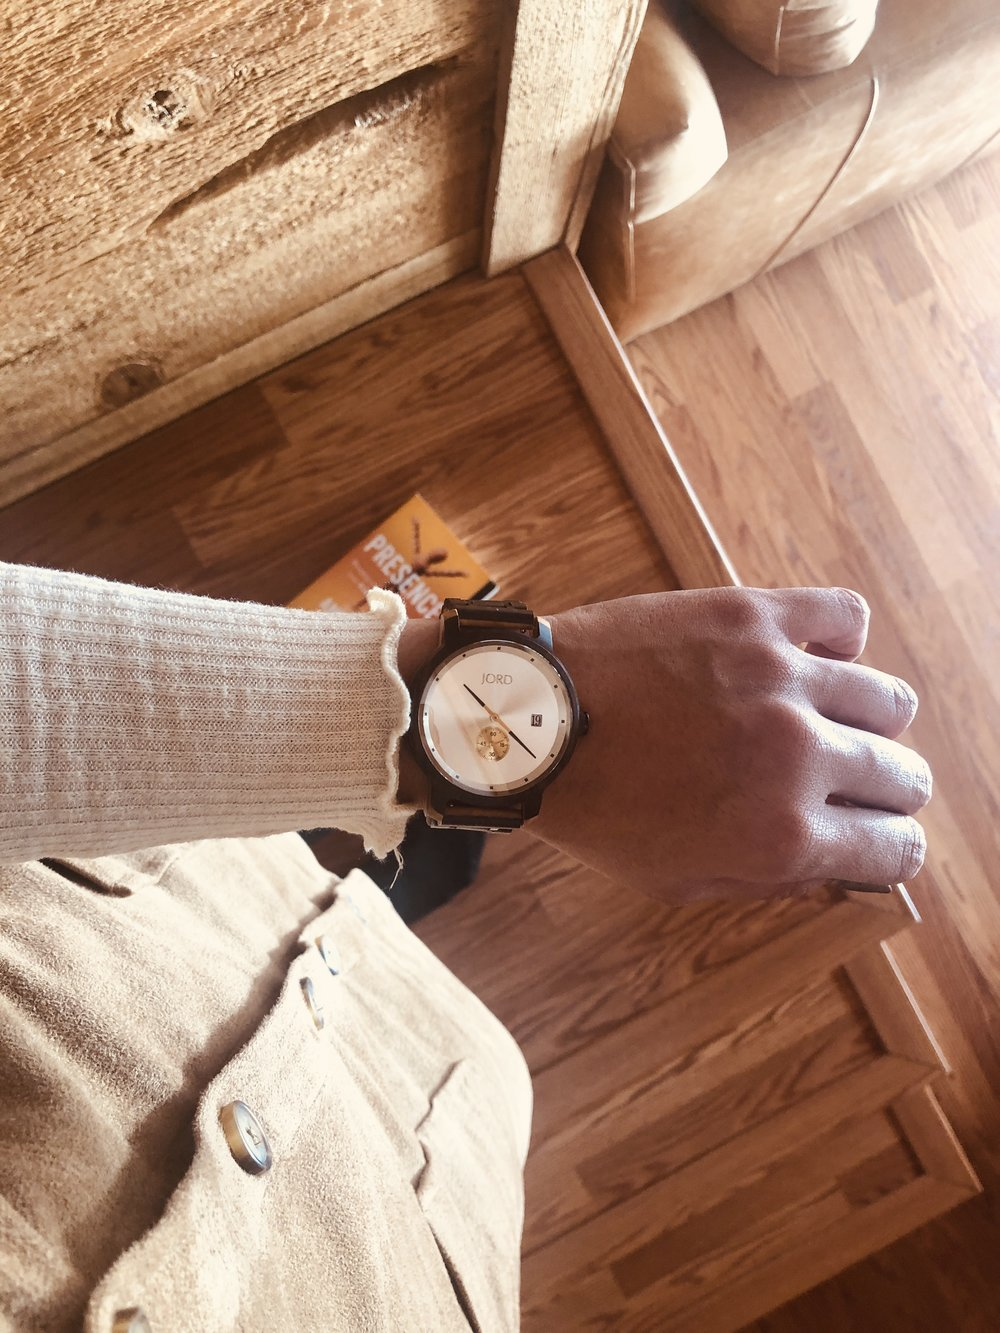 A timeless piece featuring  JORD Watches . I'm wearing the HYDE Sandalwood + Ivory piece,  check this out to win $100 towards your own classic, all-natural wooden watch.